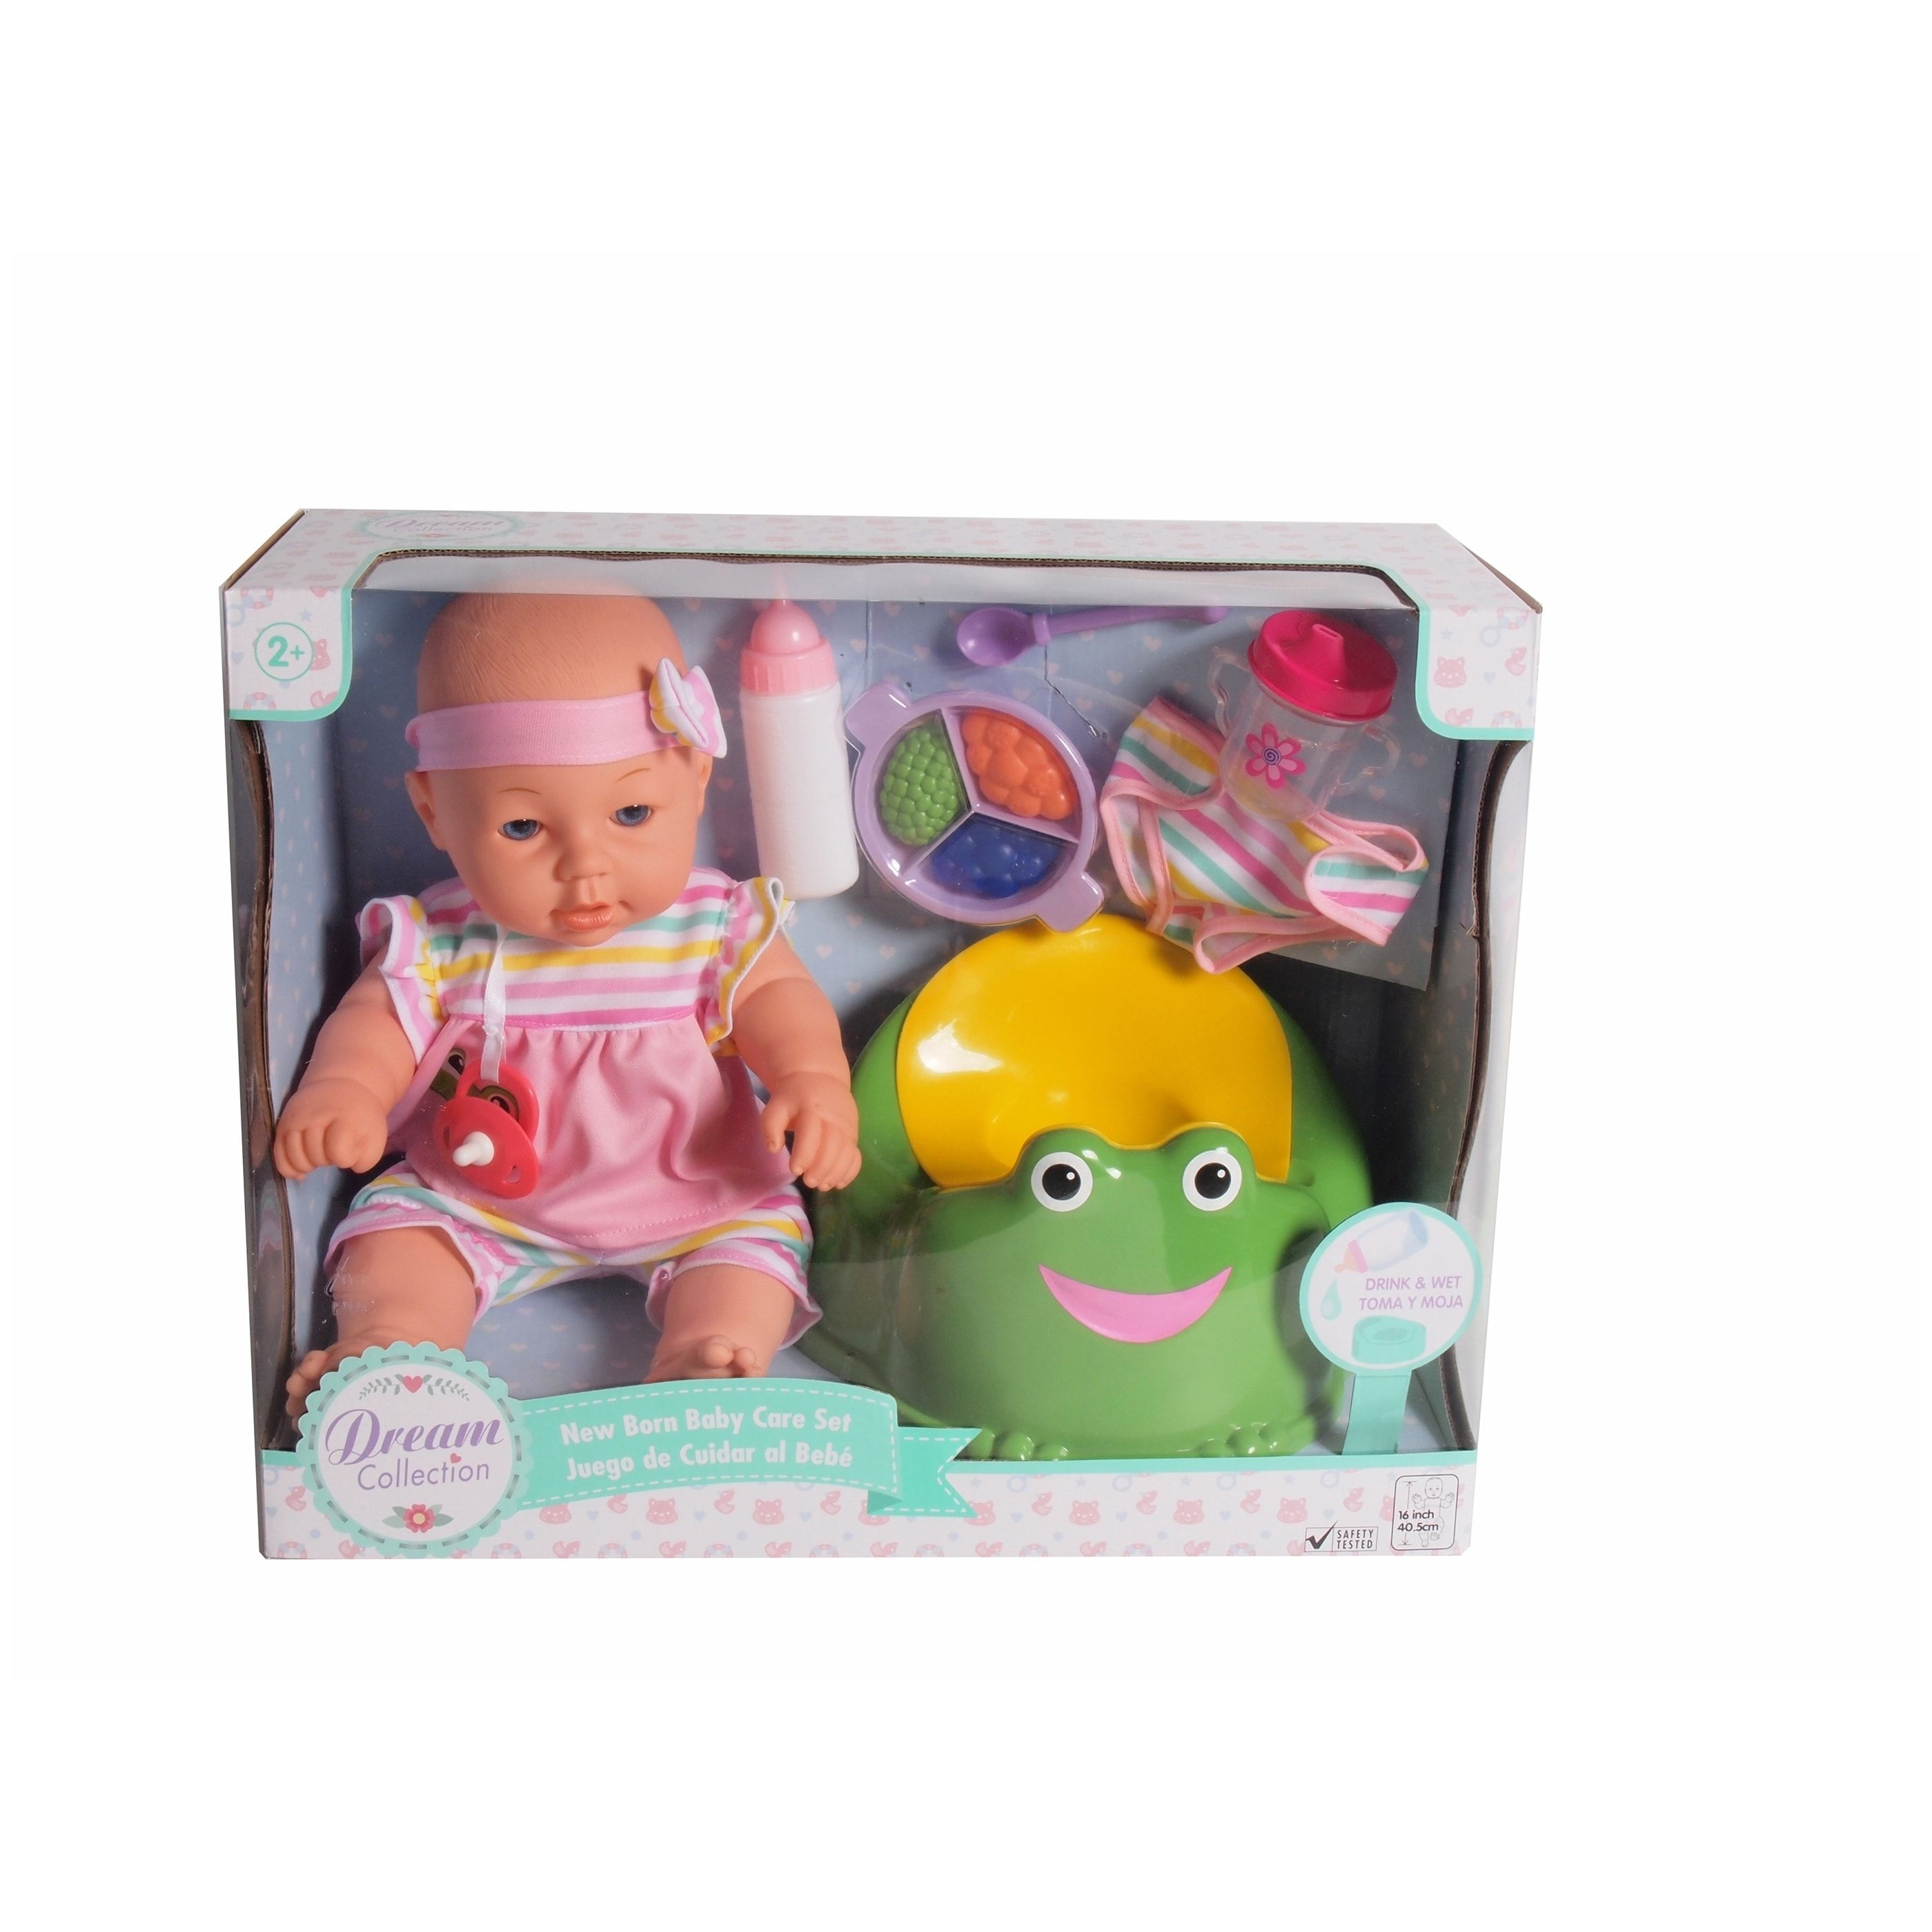 Dream Collection 16 Pretend Play Baby Doll Care Set with Potty & Accessories #dollcare